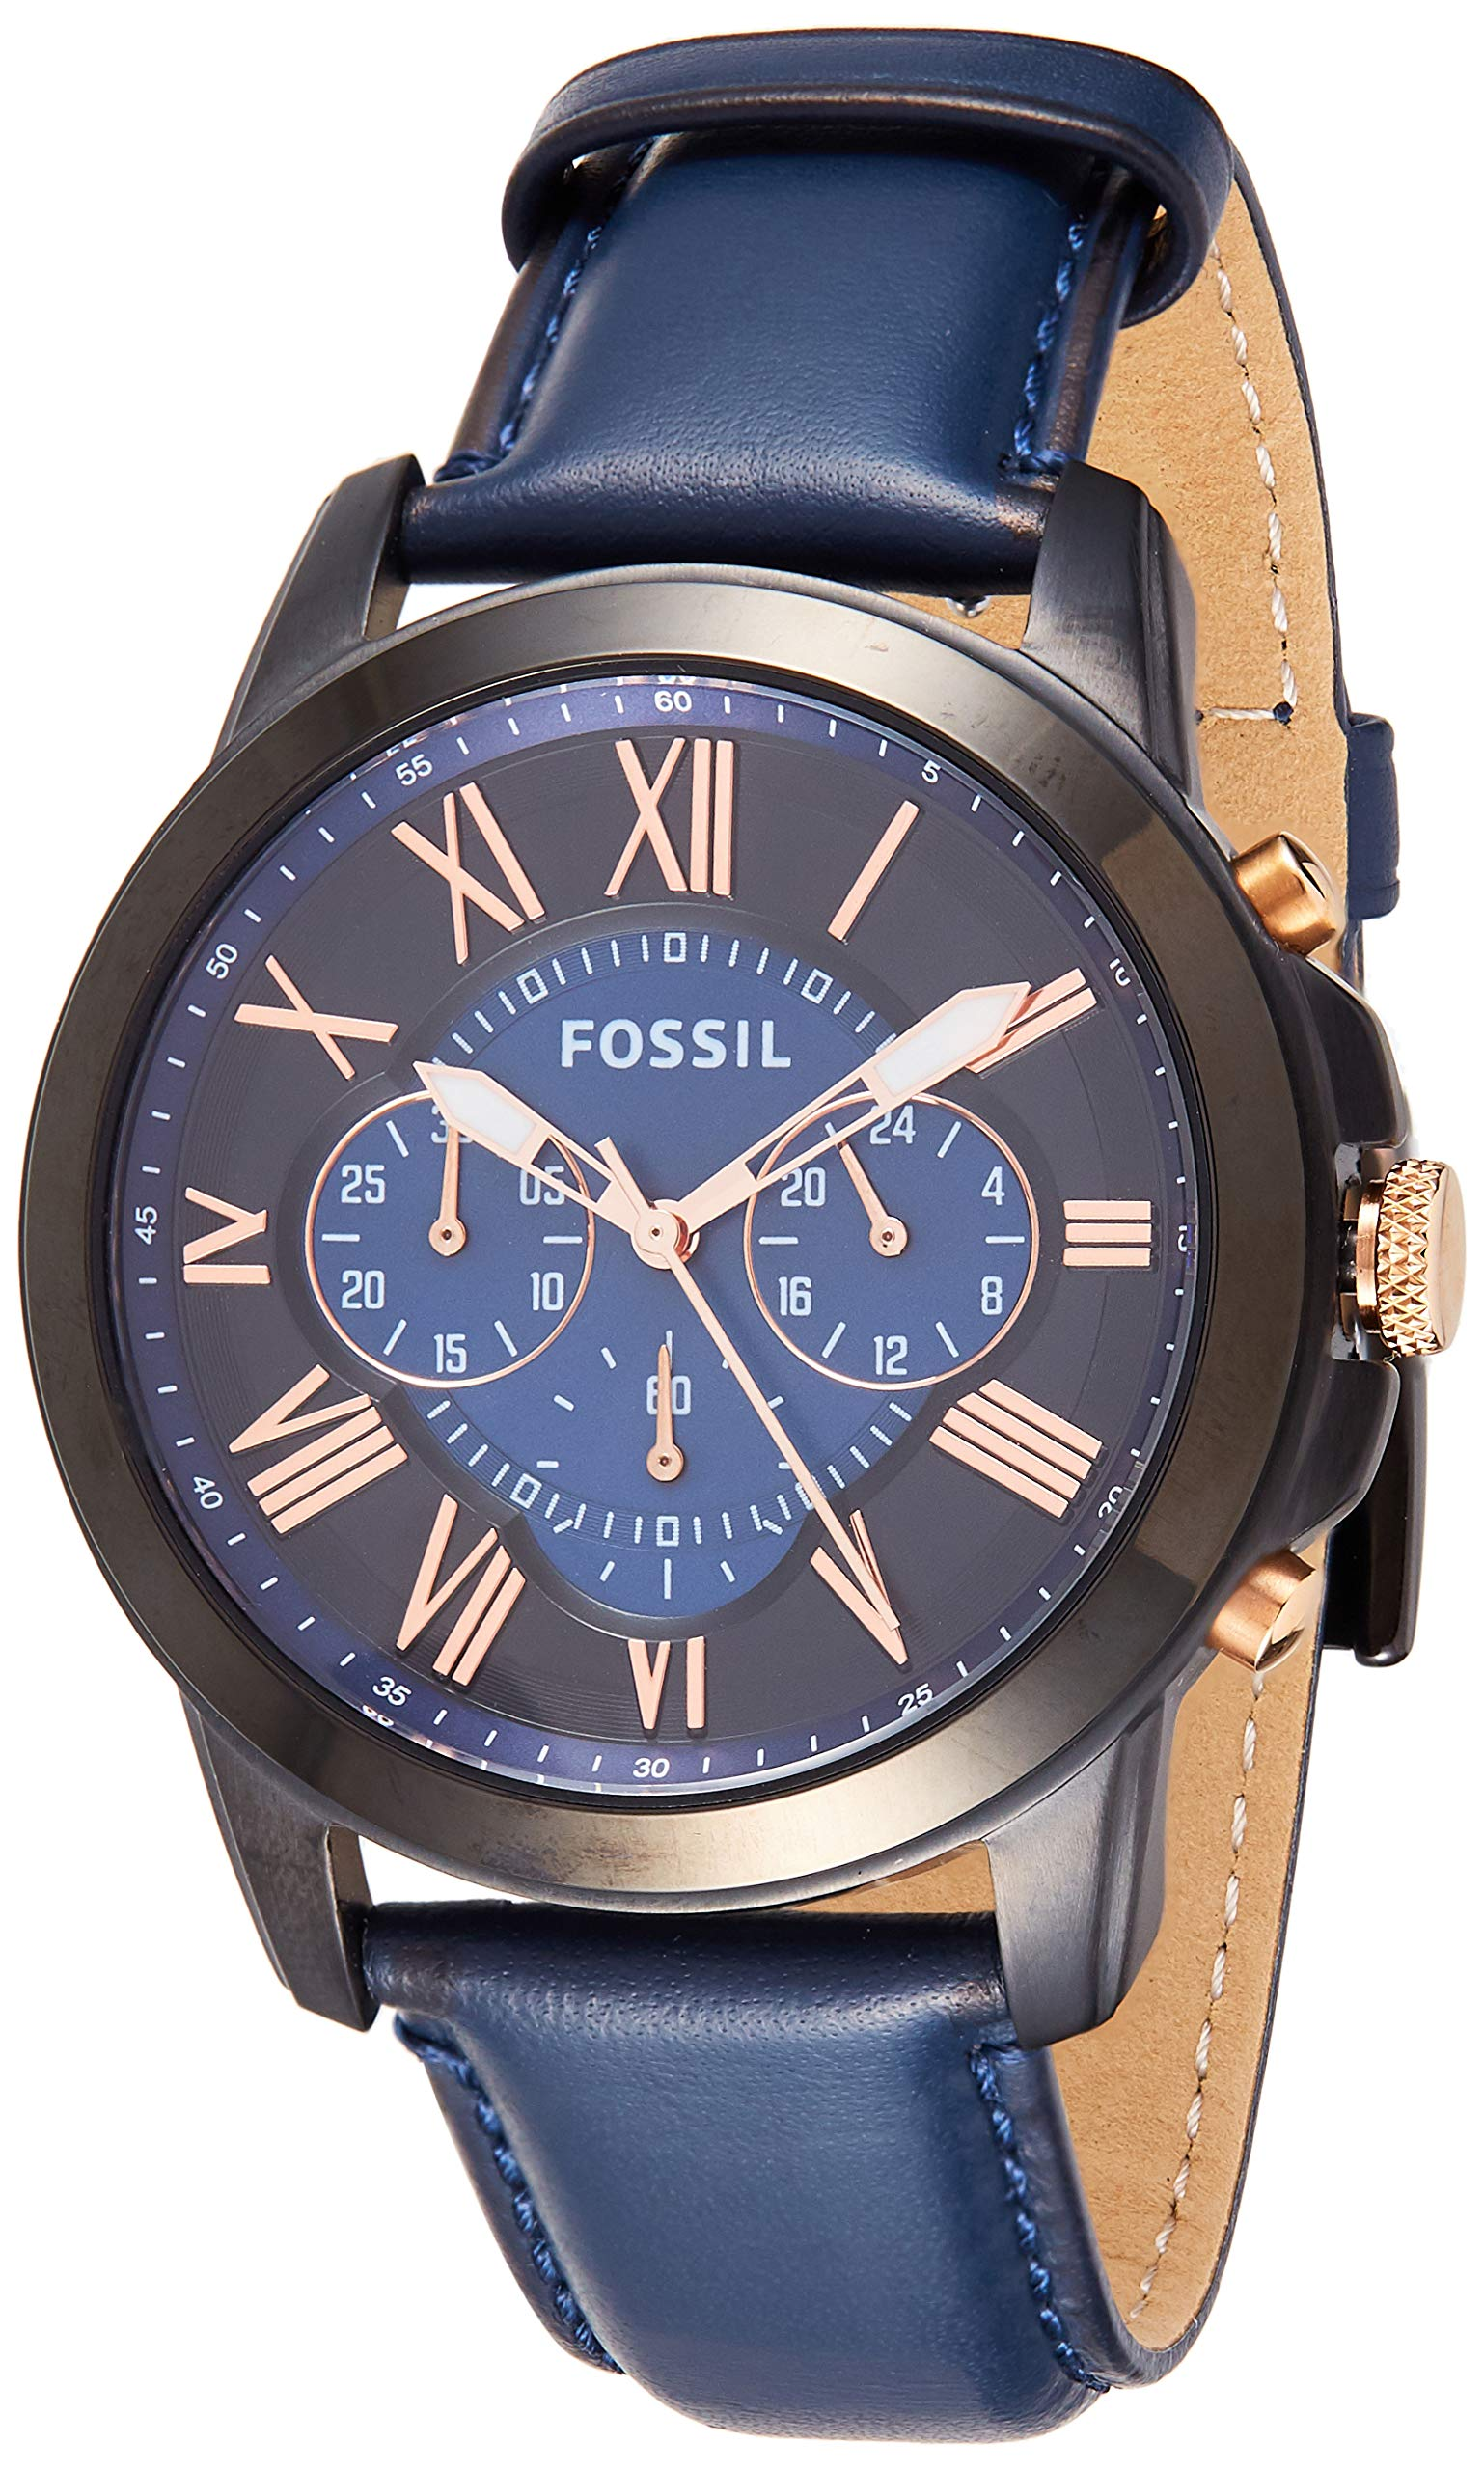 Fossil Men's Grant Quartz Stainless Steel and Leather Chronograph Watch, Color: Black, Navy (Model: FS5061IE) by Fossil